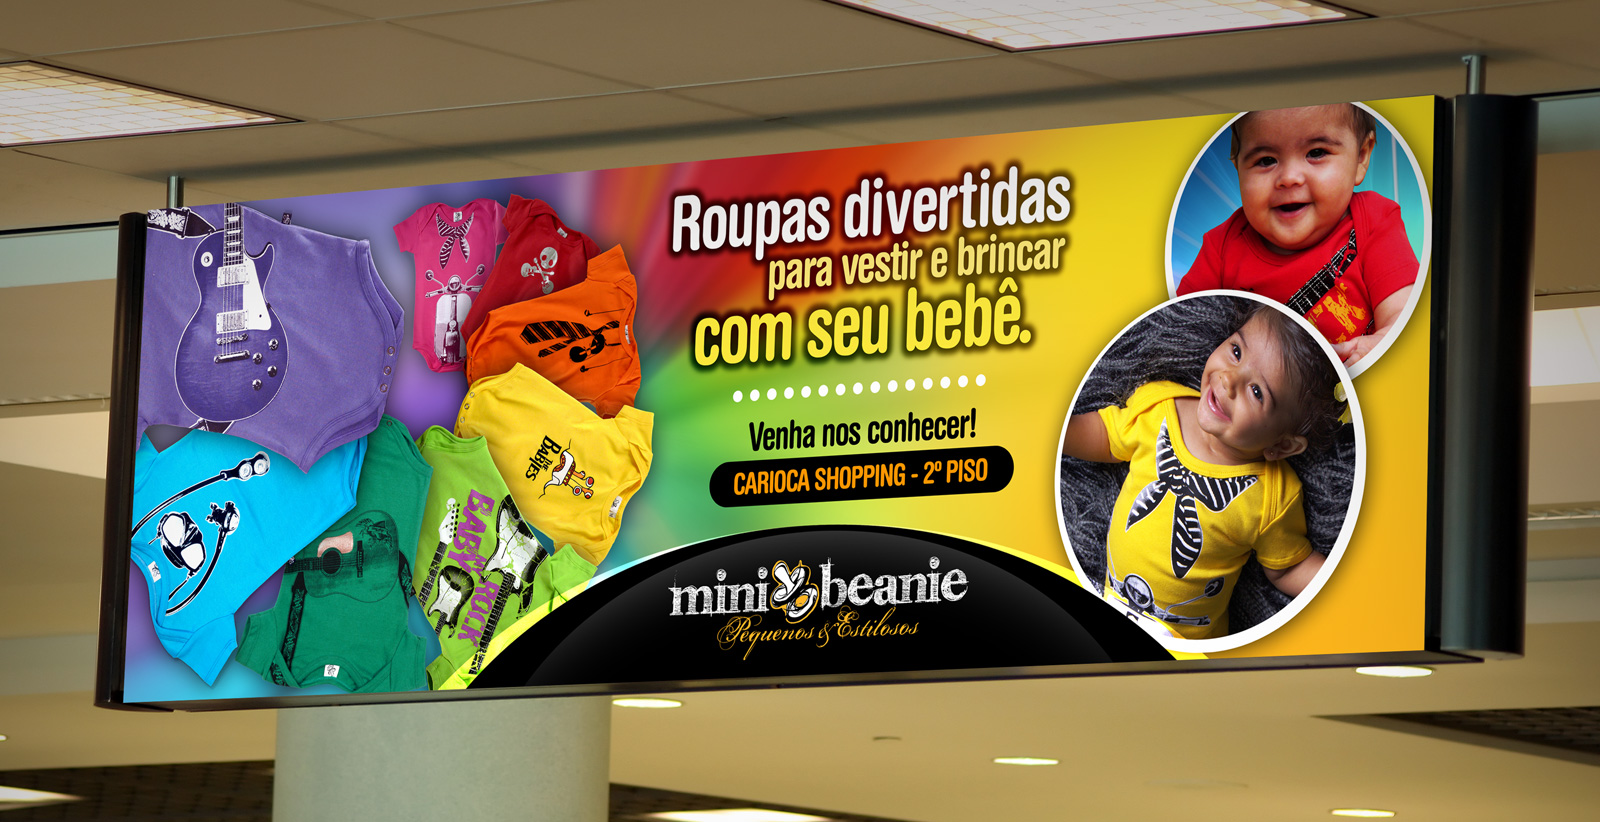 minibeanie-mall-billboard